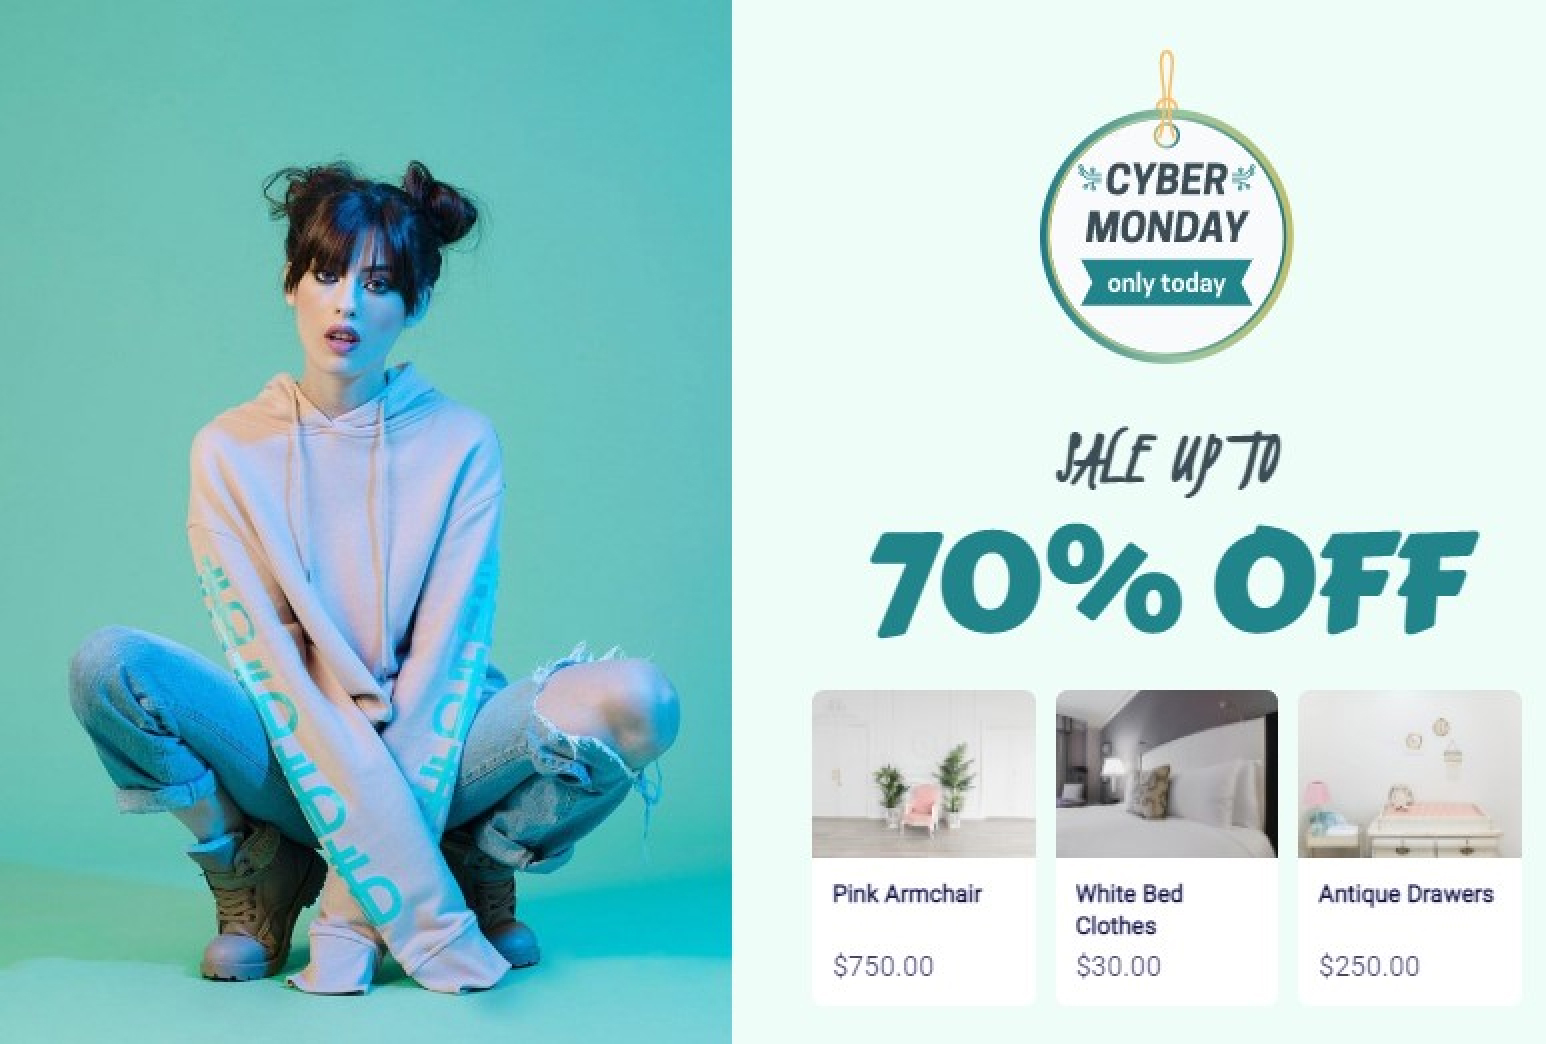 Black Friday and Cyber Monday Products Recommendation With Amazing Popup